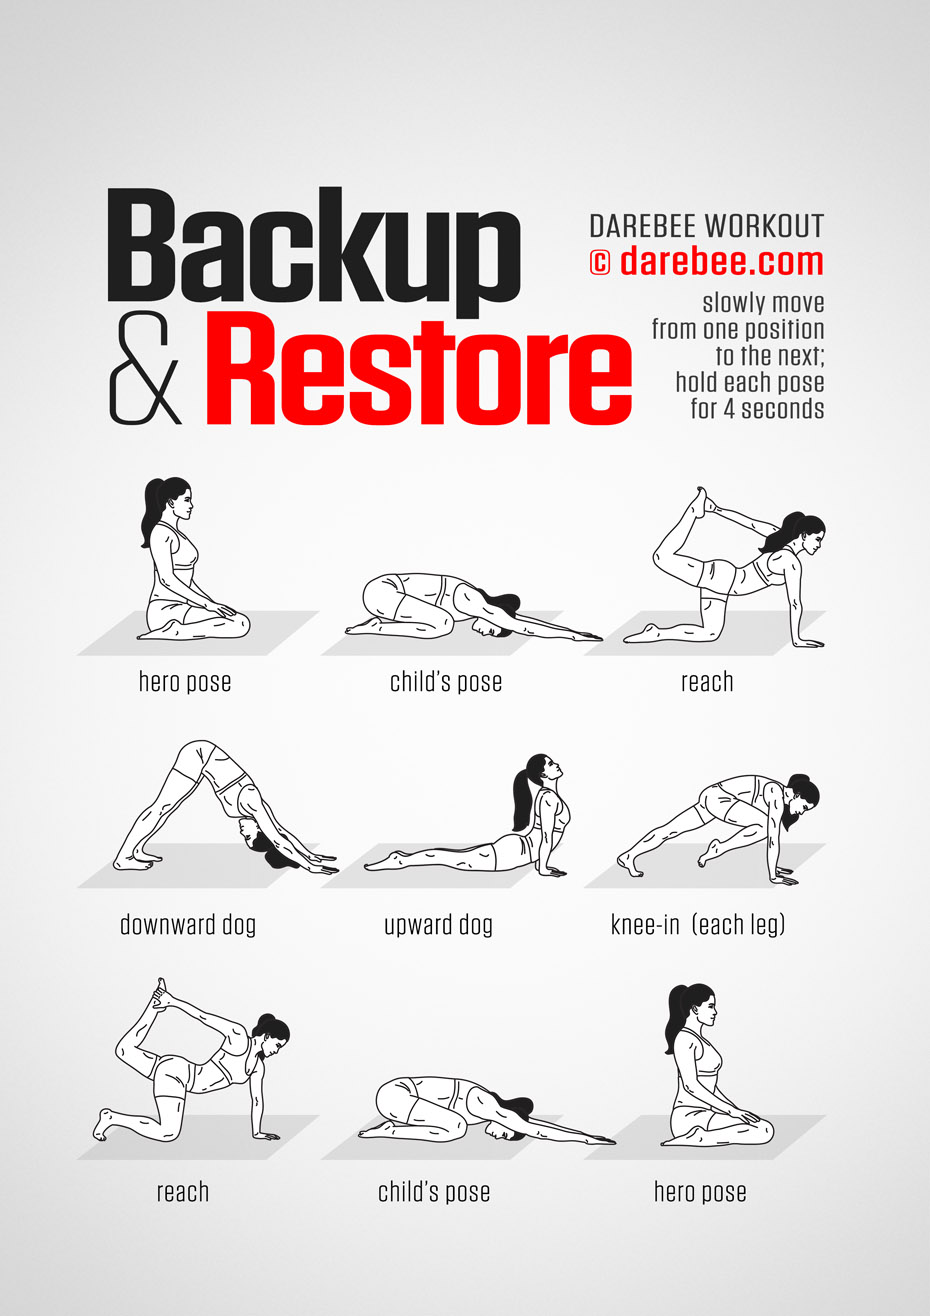 Backup & Restore Workout